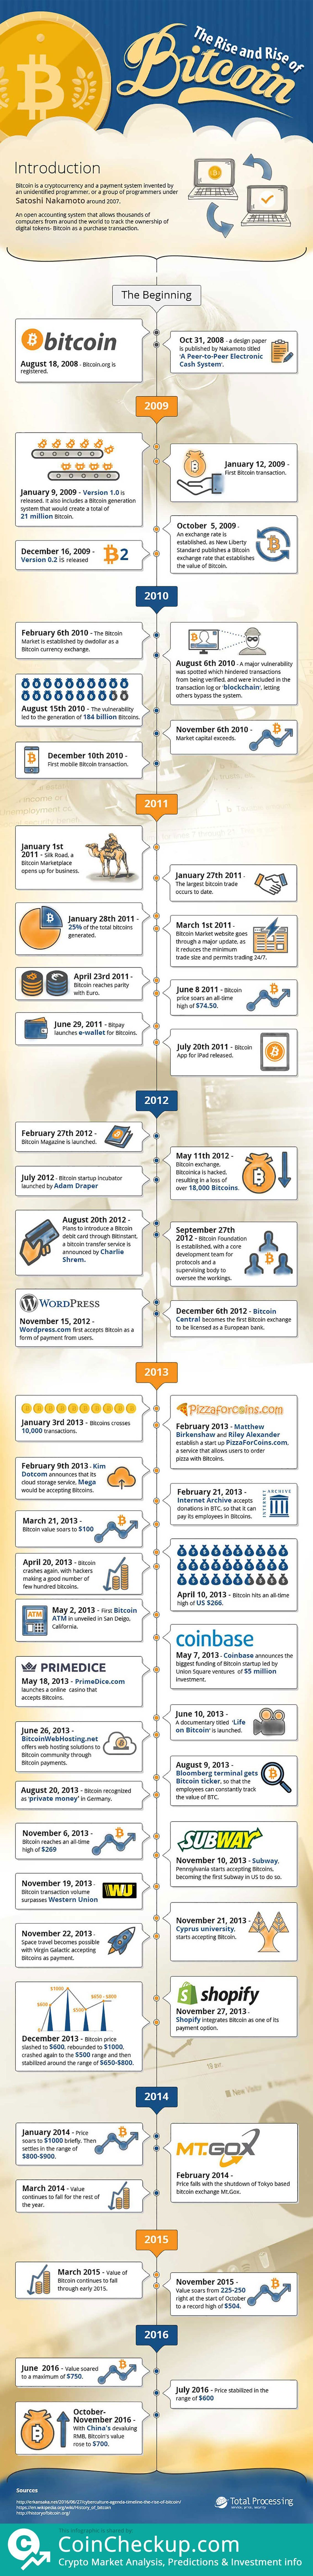 Bitcoin, How we got where we are today. By CoinCheckup